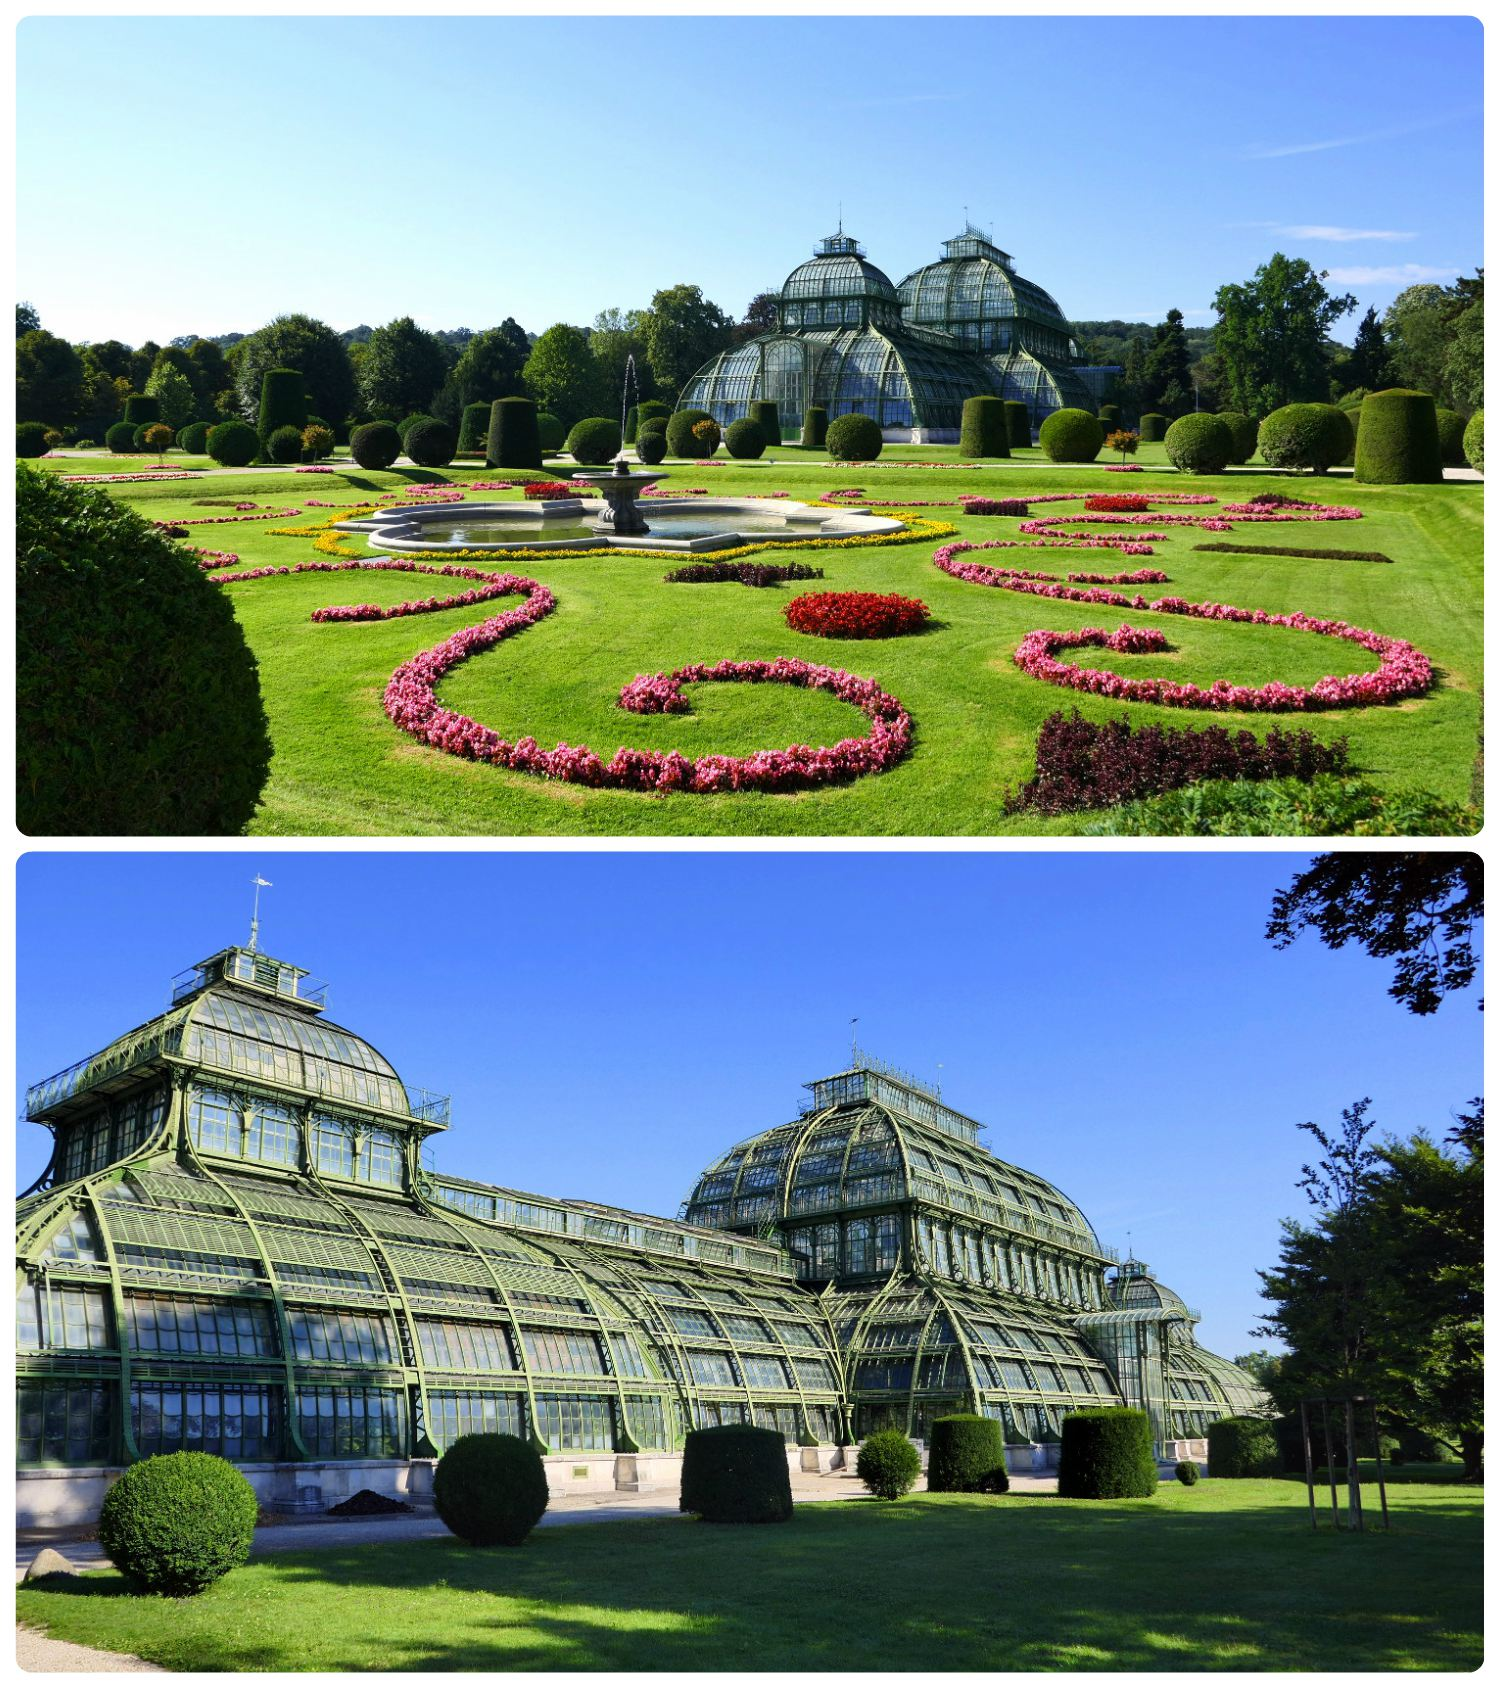 The Palm House is picturesque, especially in the background of the fountains and manicured garden.